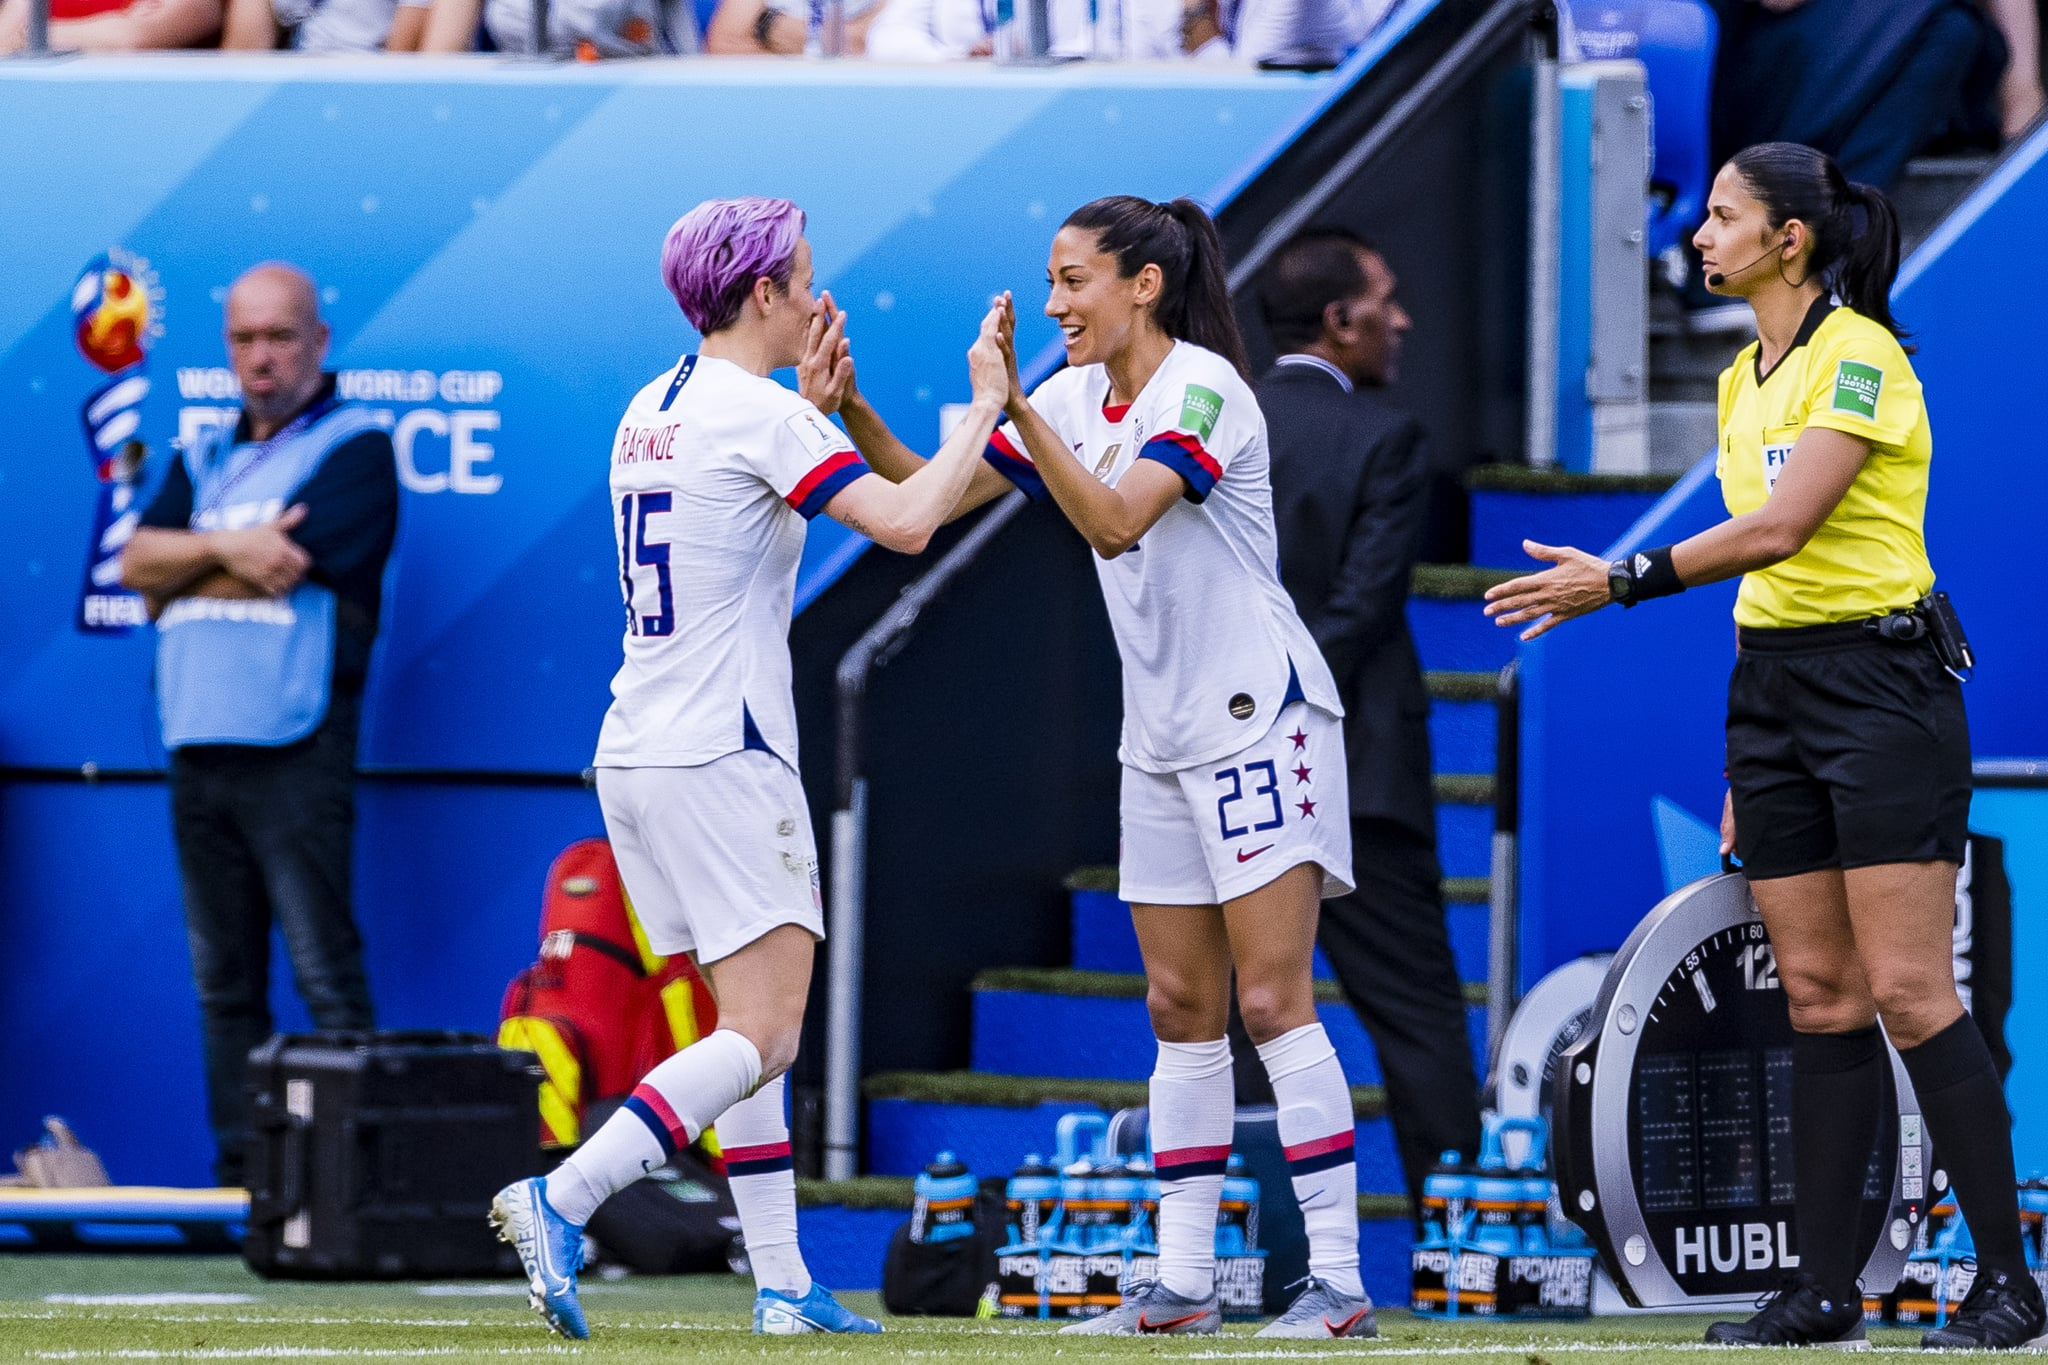 LYON, FRANCE - JULY 07: Megan Rapinoe of United States (L) leaves the field for substitution with Christen Press of United States (R) during the 2019 FIFA Women's World Cup France Final match between The United State of America and The Netherlands at Stade de Lyon on July 7, 2019 in Lyon, France. (Photo by Marcio Machado/Getty Images)